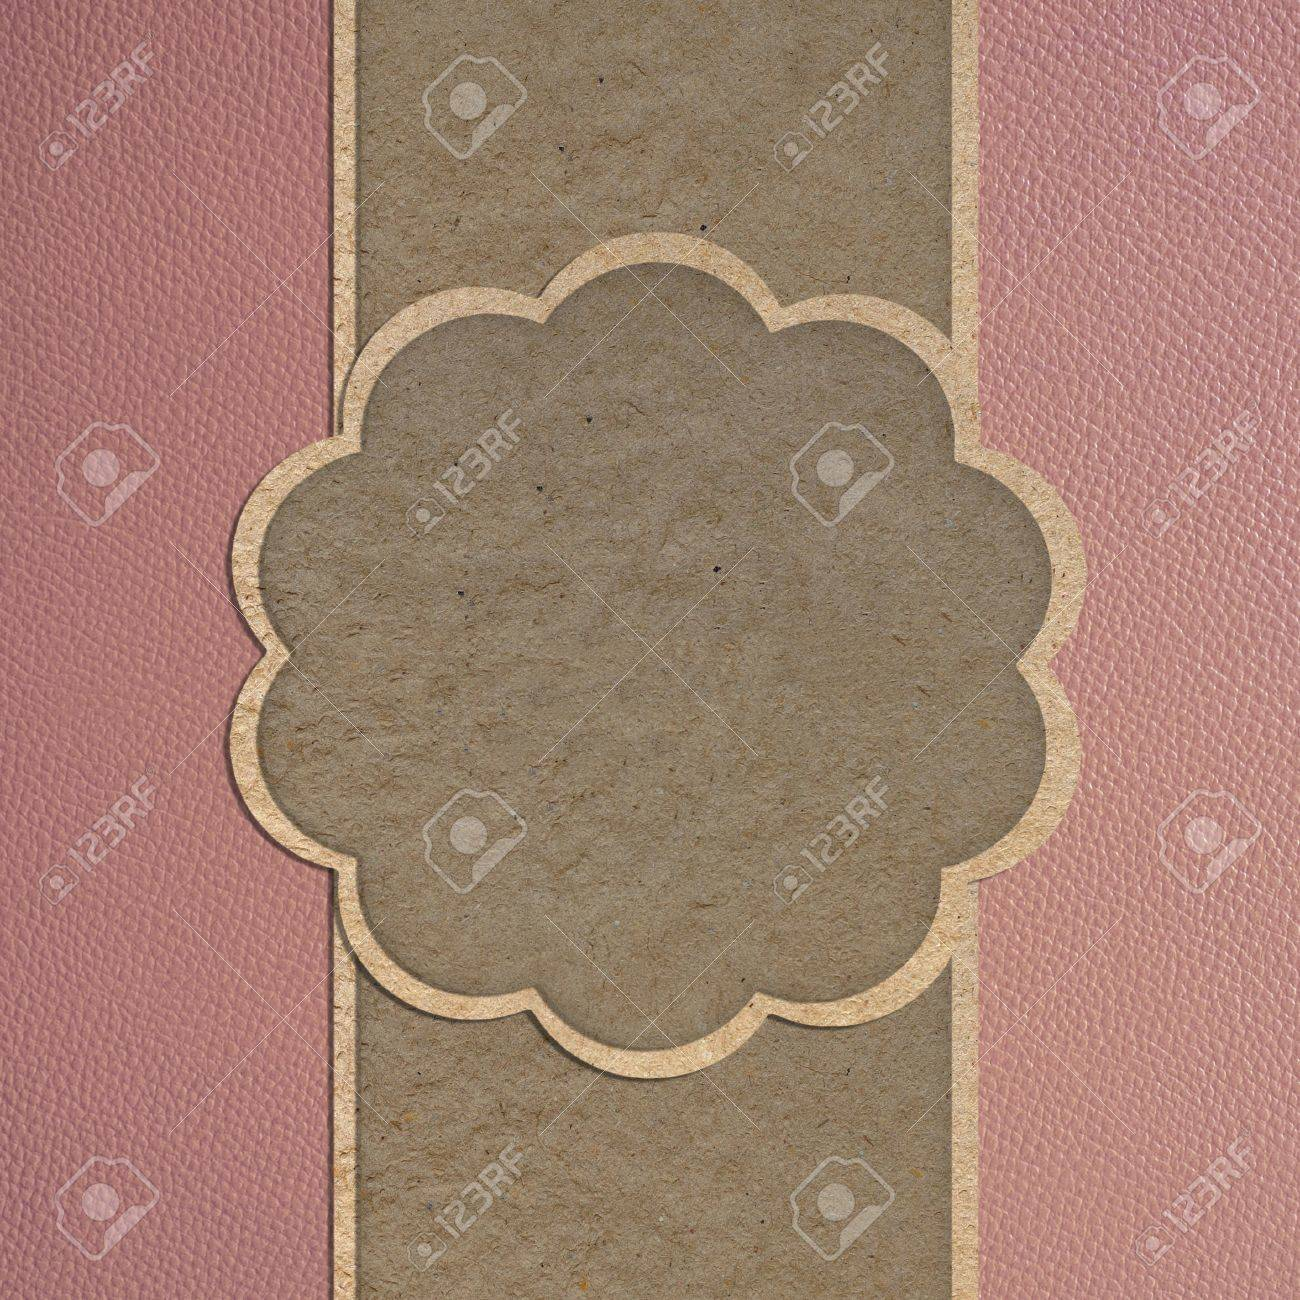 leather texture and paper craft stick template frame design for greeting card stock photo 12249950